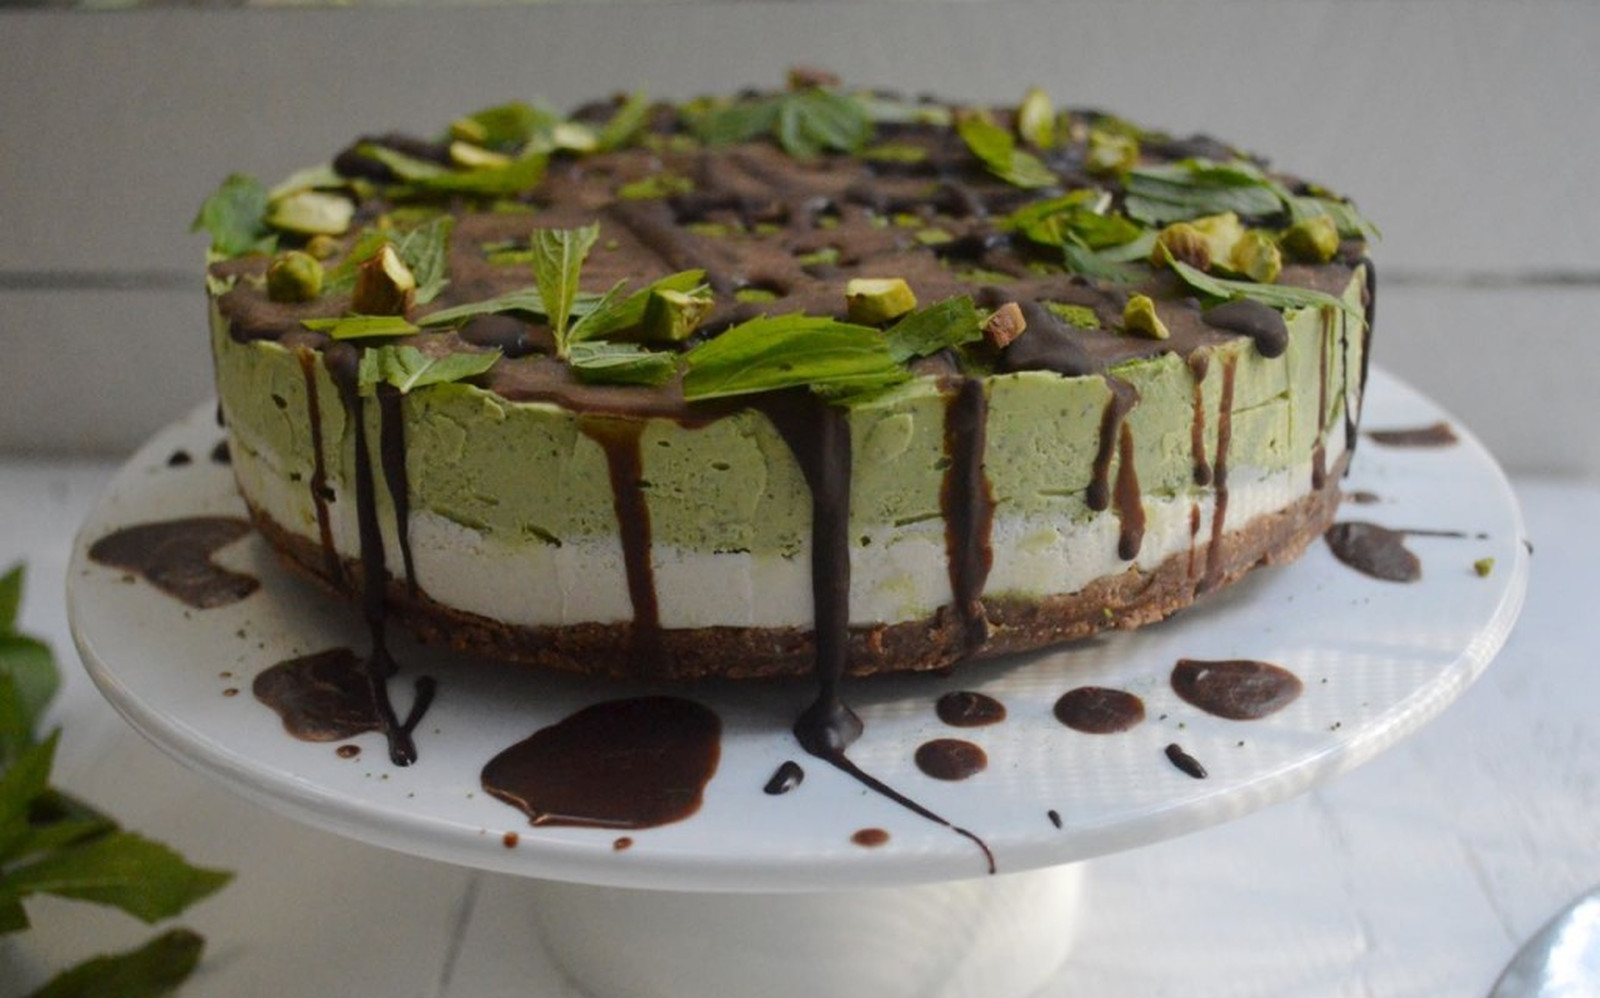 Matcha Green Tea and Mint Cheesecake [Vegan, Raw, Gluten-Free]